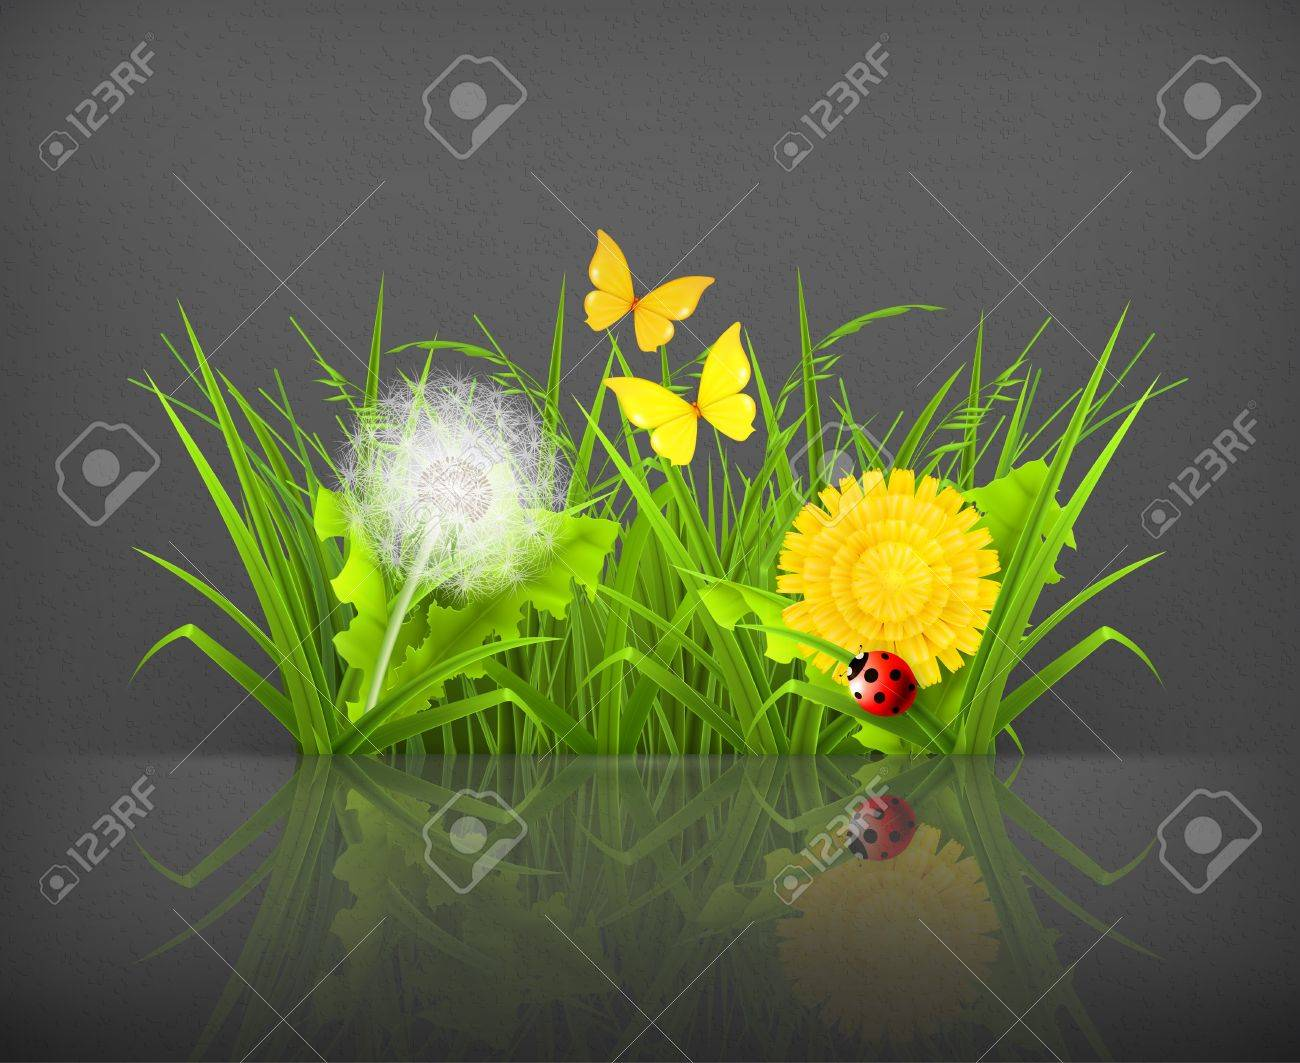 Summer grass Stock Vector - 19621679